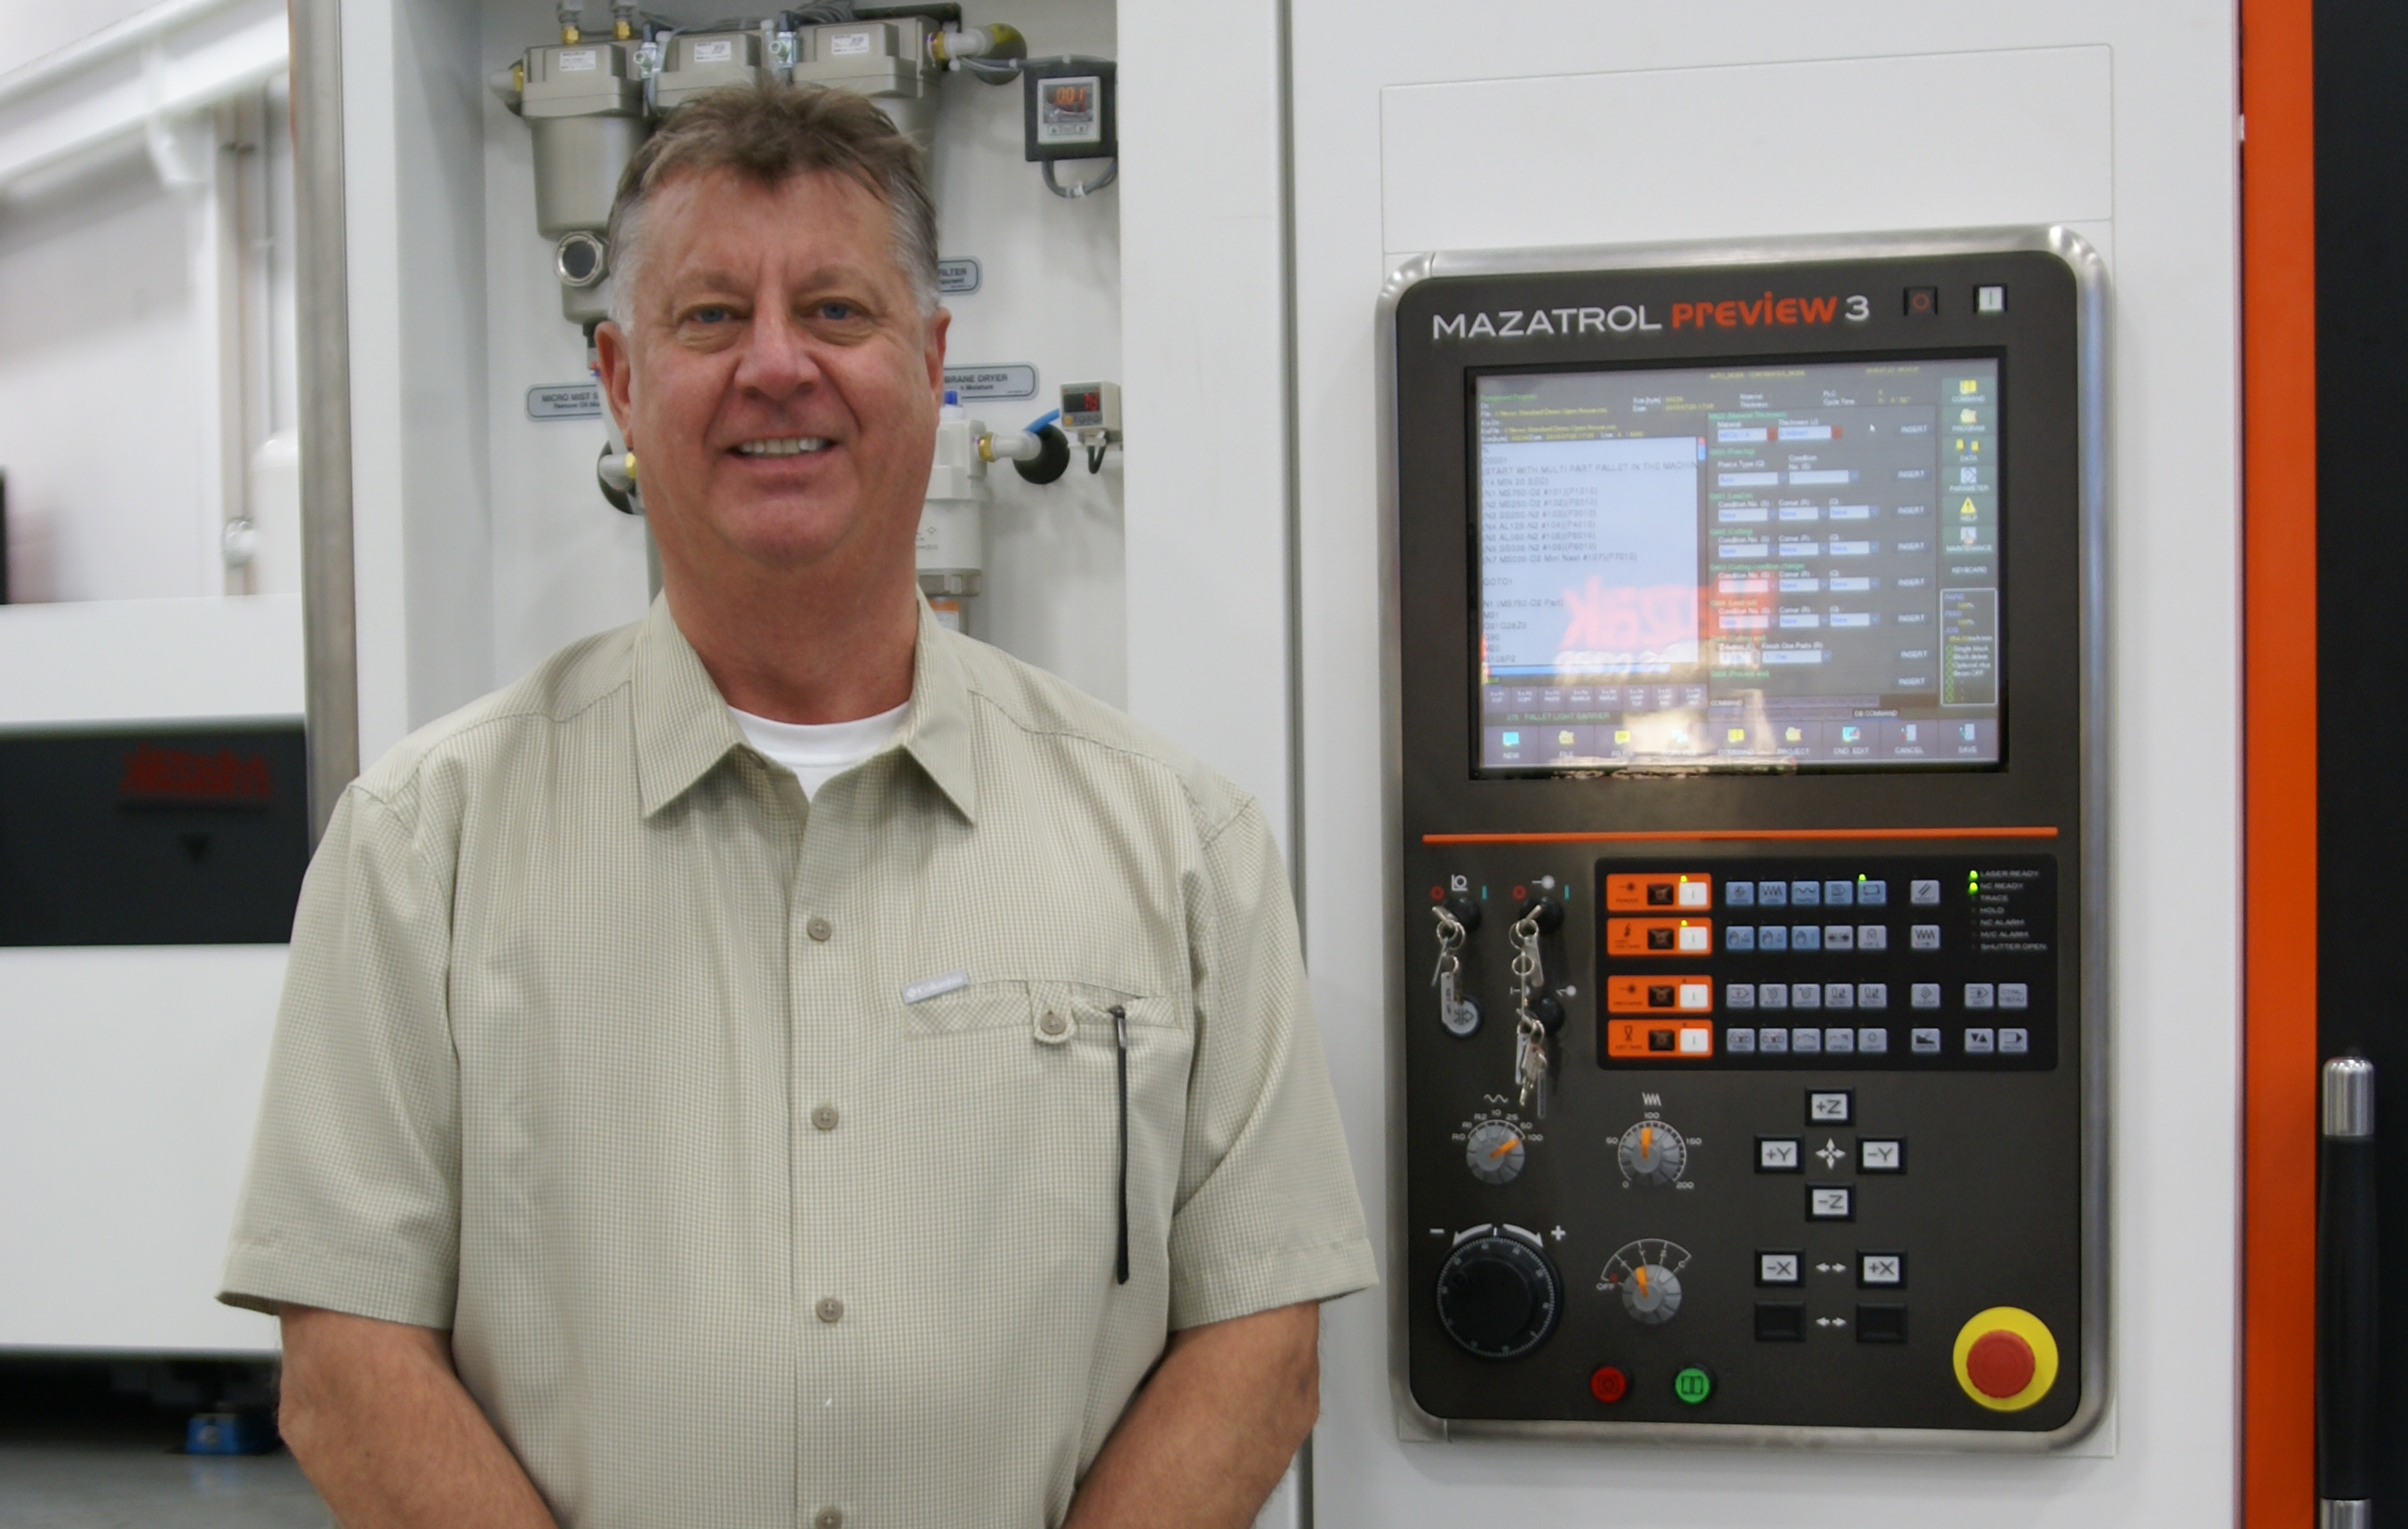 meet charlie zeman mazak optonics corporation s call center provides the customer support concerning machine operation repair or preventative service assistance